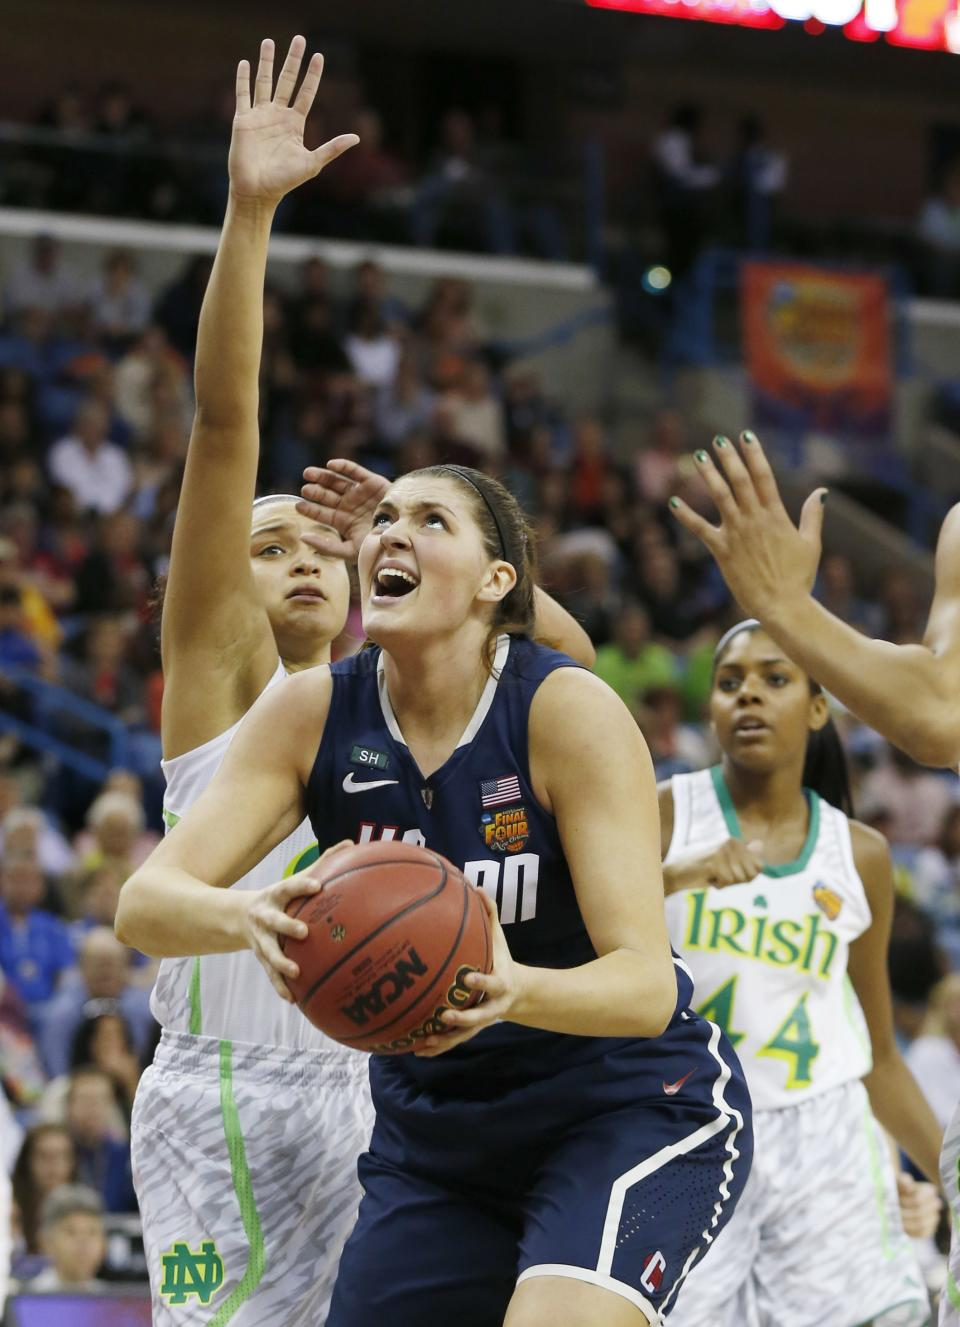 Connecticut center Stefanie Dolson (31) takes a shot against Notre Dame defense in the first half of the women's NCAA Final Four college basketball tournament semifinal, Sunday, April 7, 2013, in New Orleans. (AP Photo/Dave Martin)